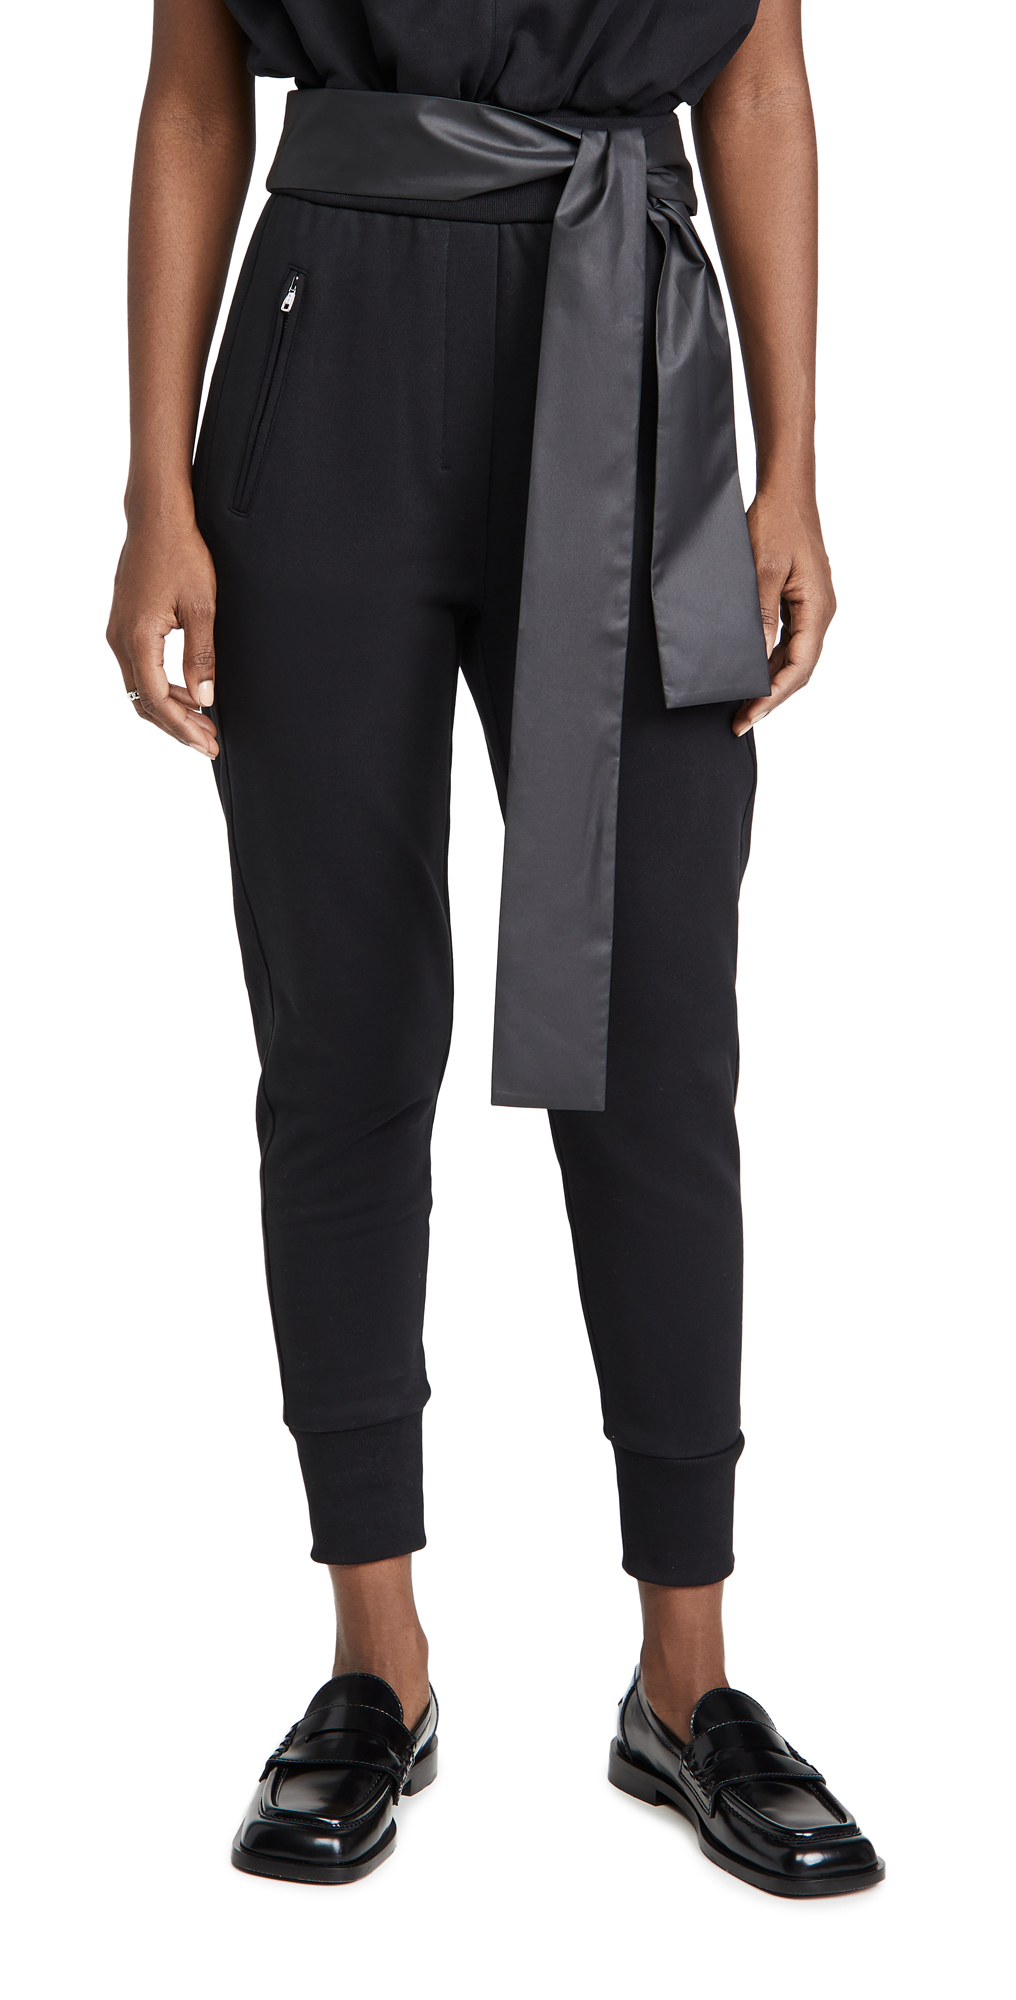 3.1 Phillip Lim French Terry Joggers